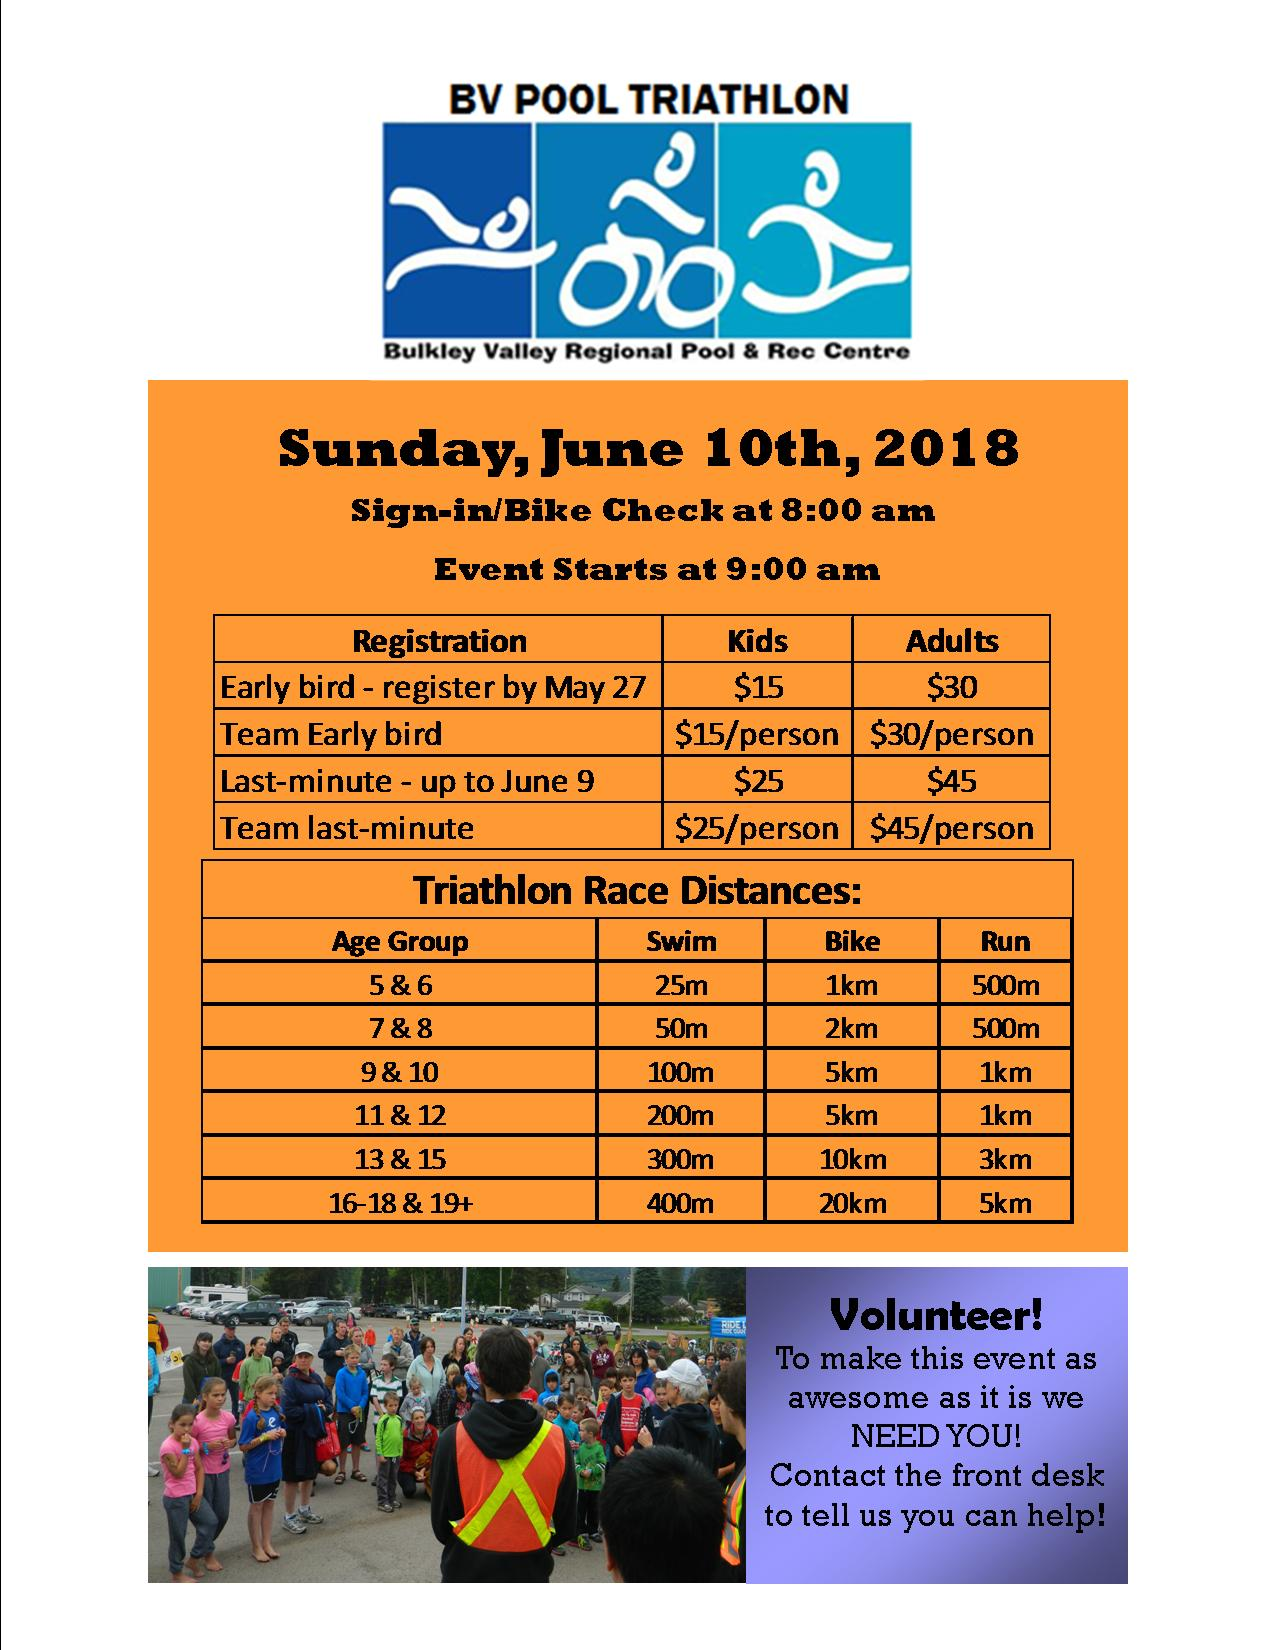 Info sheet for BV Triathlon Event